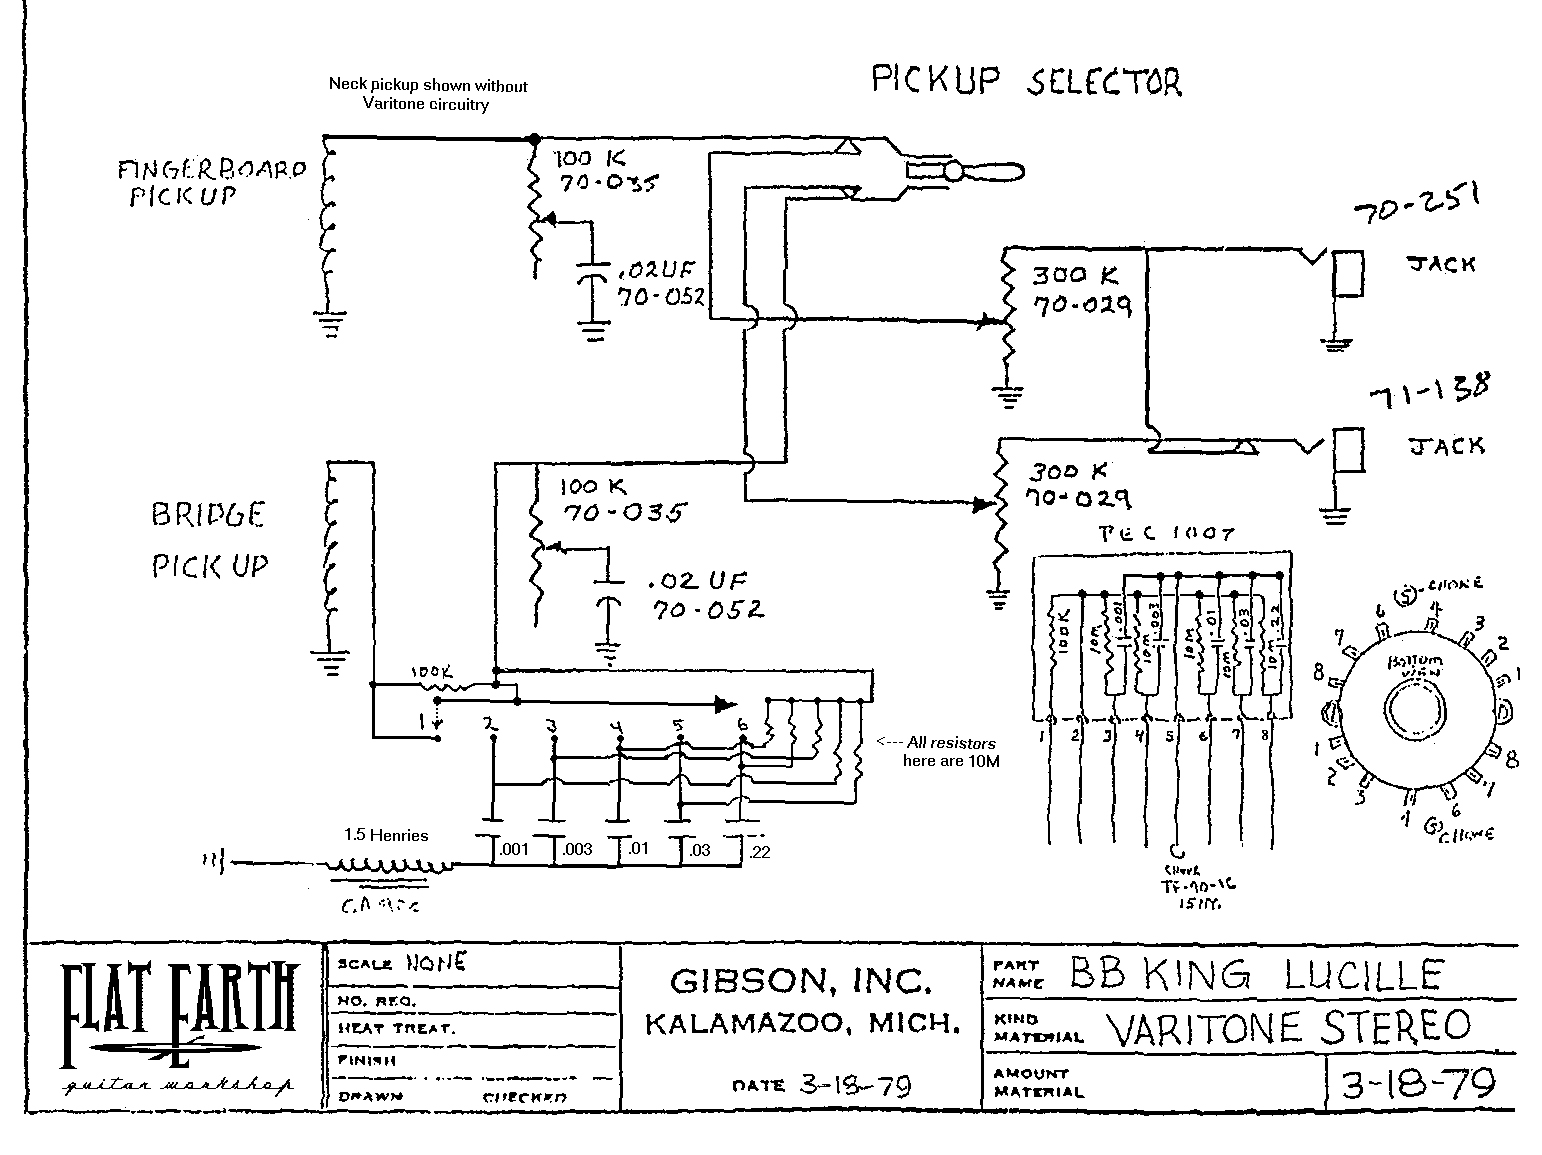 Jw Guitarworks Schematics Updated As I Find New Examples The David Gilmour Black Strat Wiring Diagram Zakk Wylde Les Paul